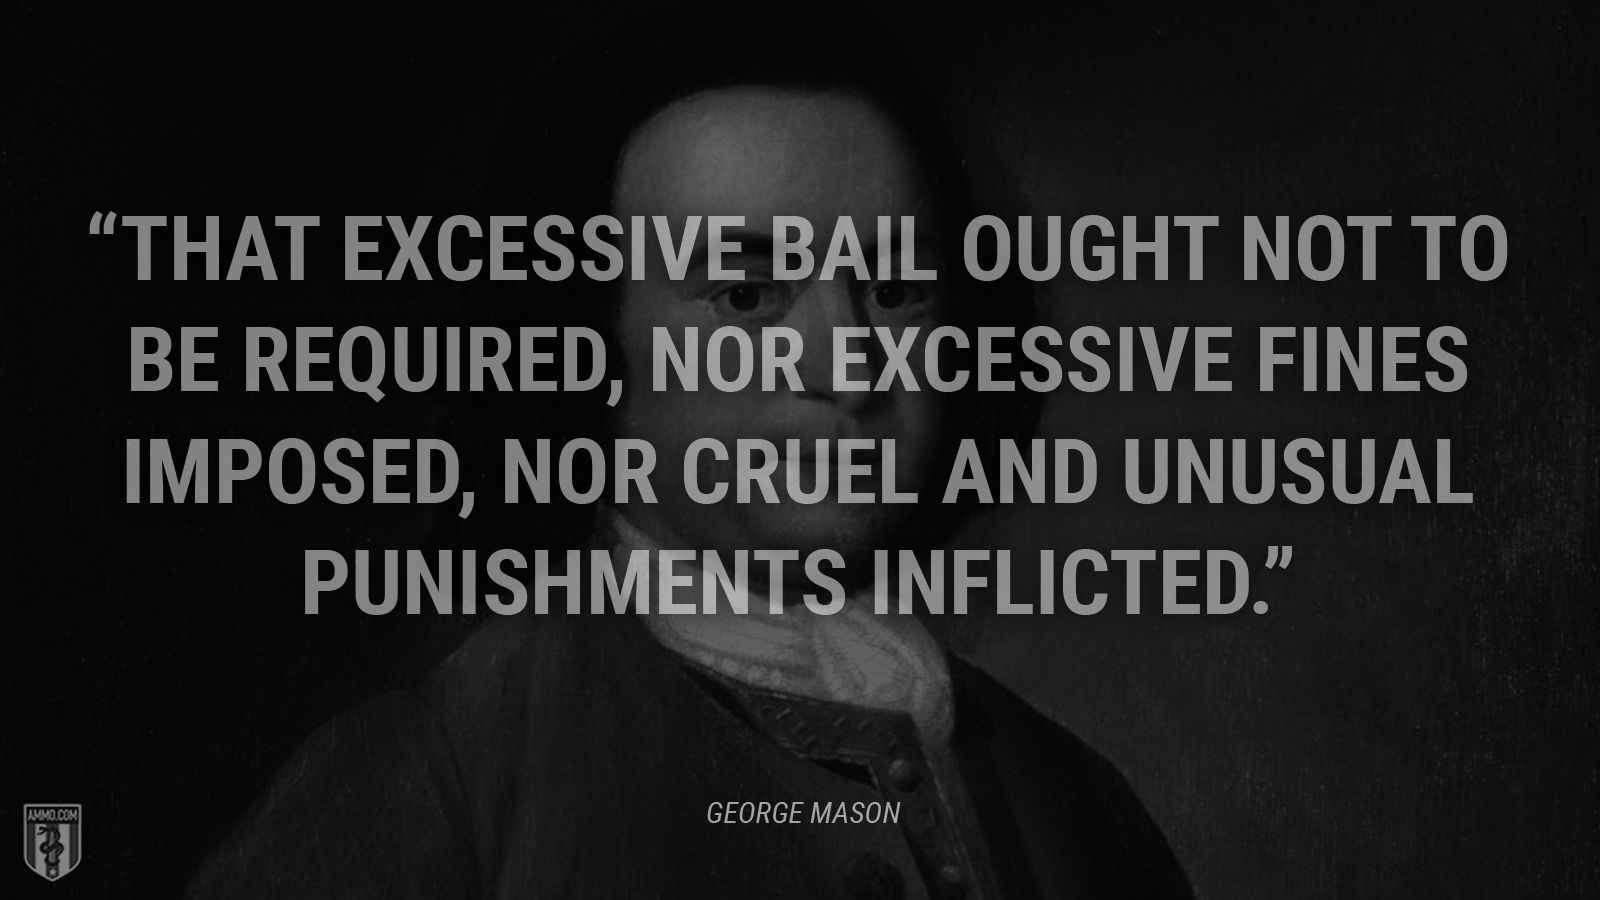 """That excessive bail ought not to be required, nor excessive fines imposed, nor cruel and unusual punishments inflicted."" - George Mason"